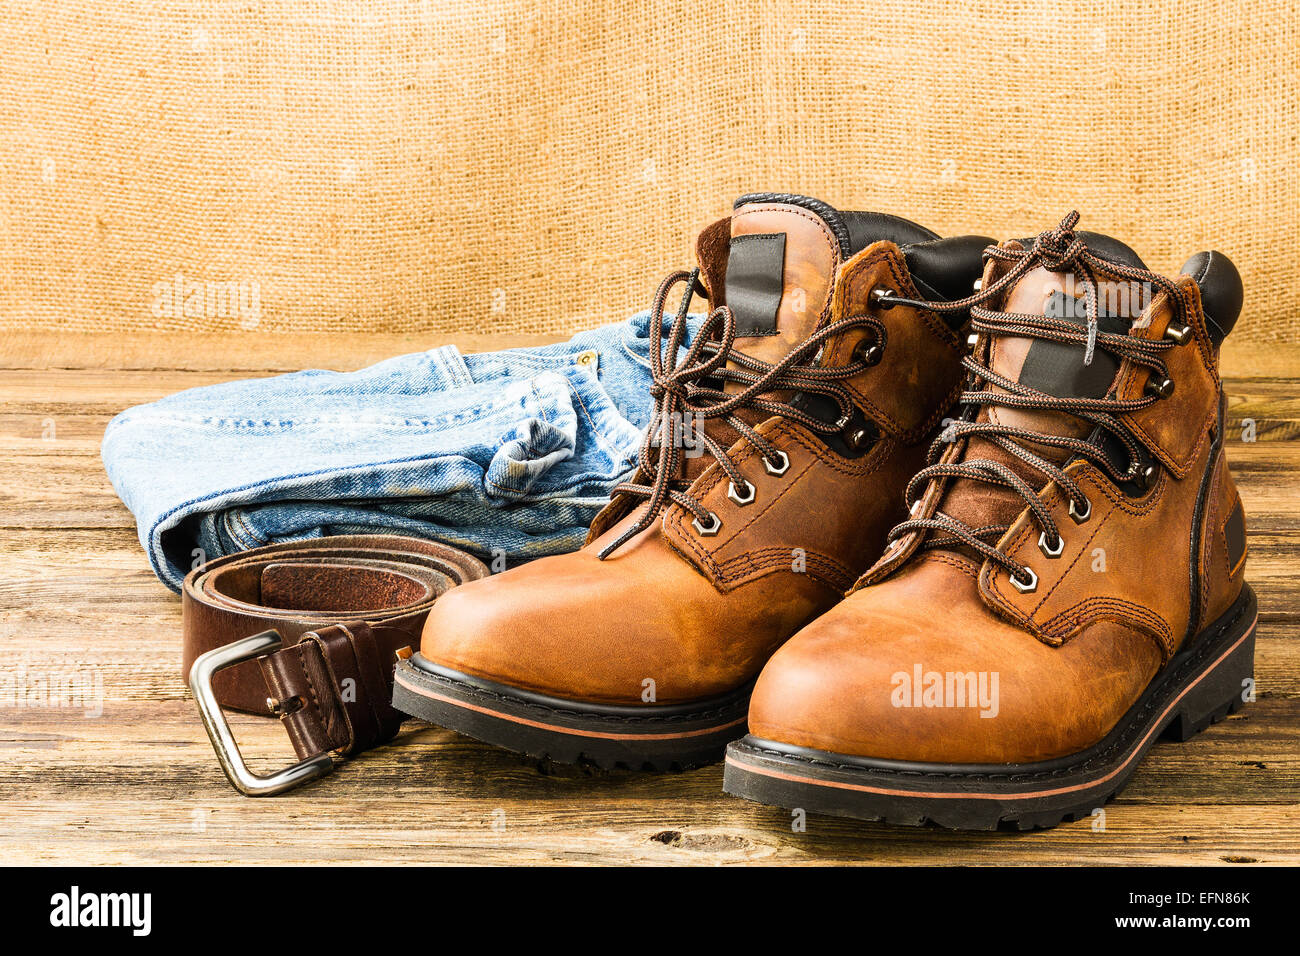 brown men's boots, jeans and belt on wooden background Stock